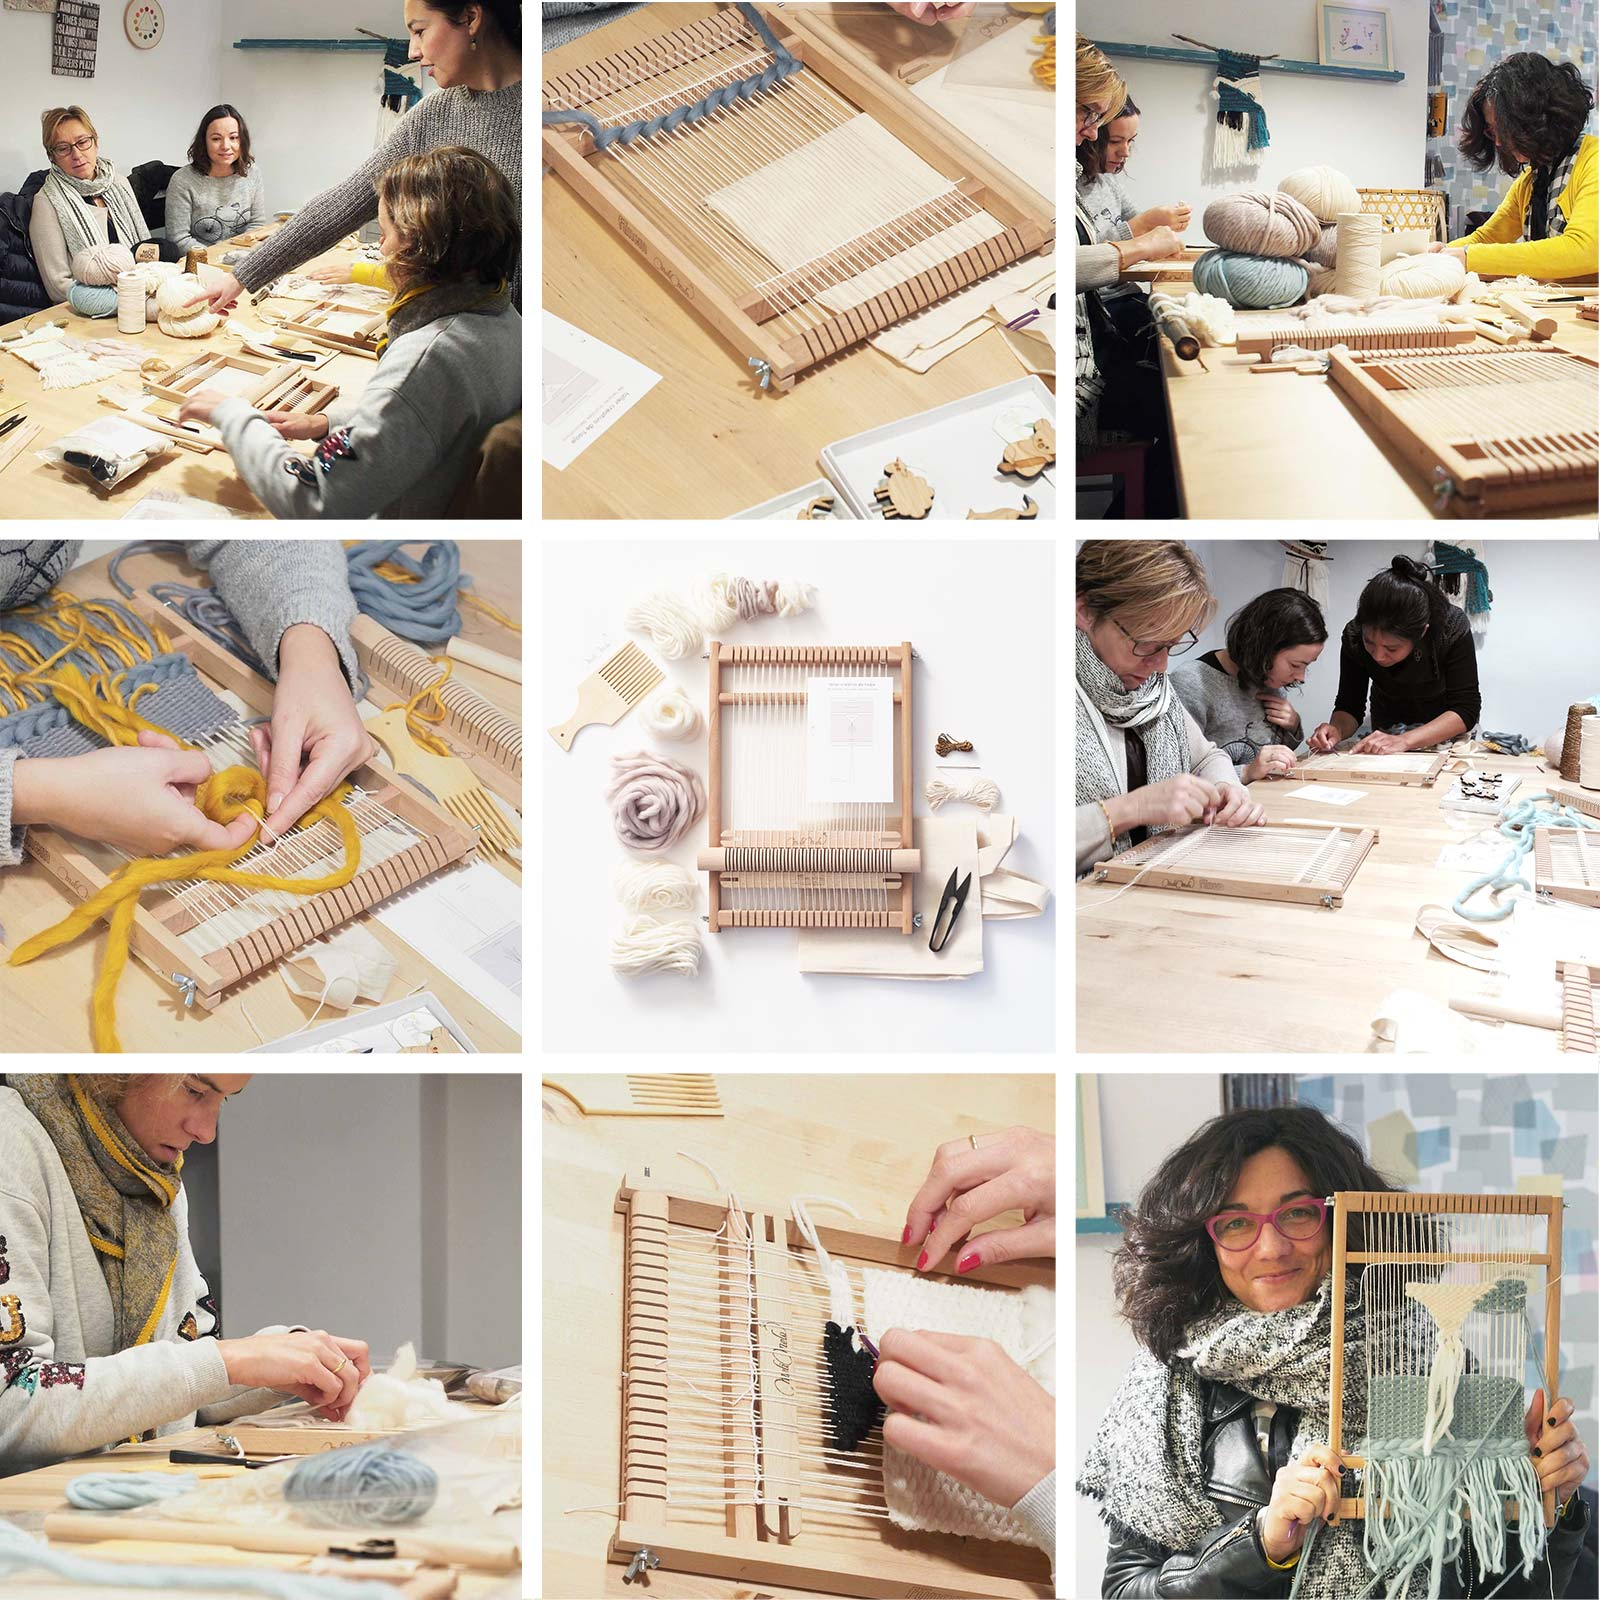 Ateliers de tissage collage Valladolid Mimarinita laboutiquedemelimelo